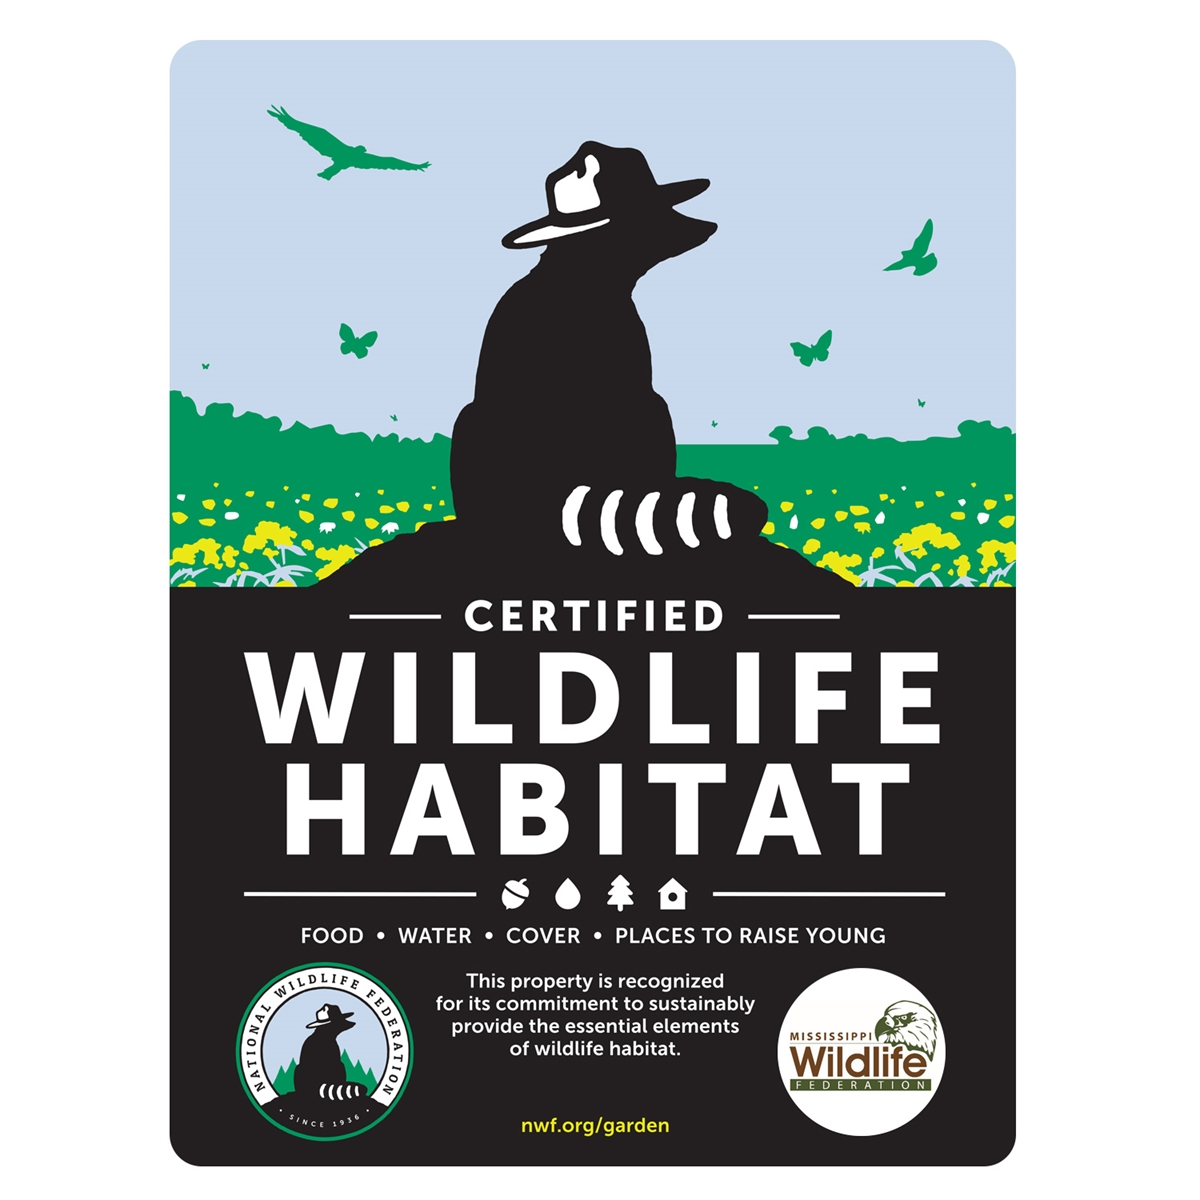 Mississippi Wildlife Federation Certified Wildlife Habitat Sign